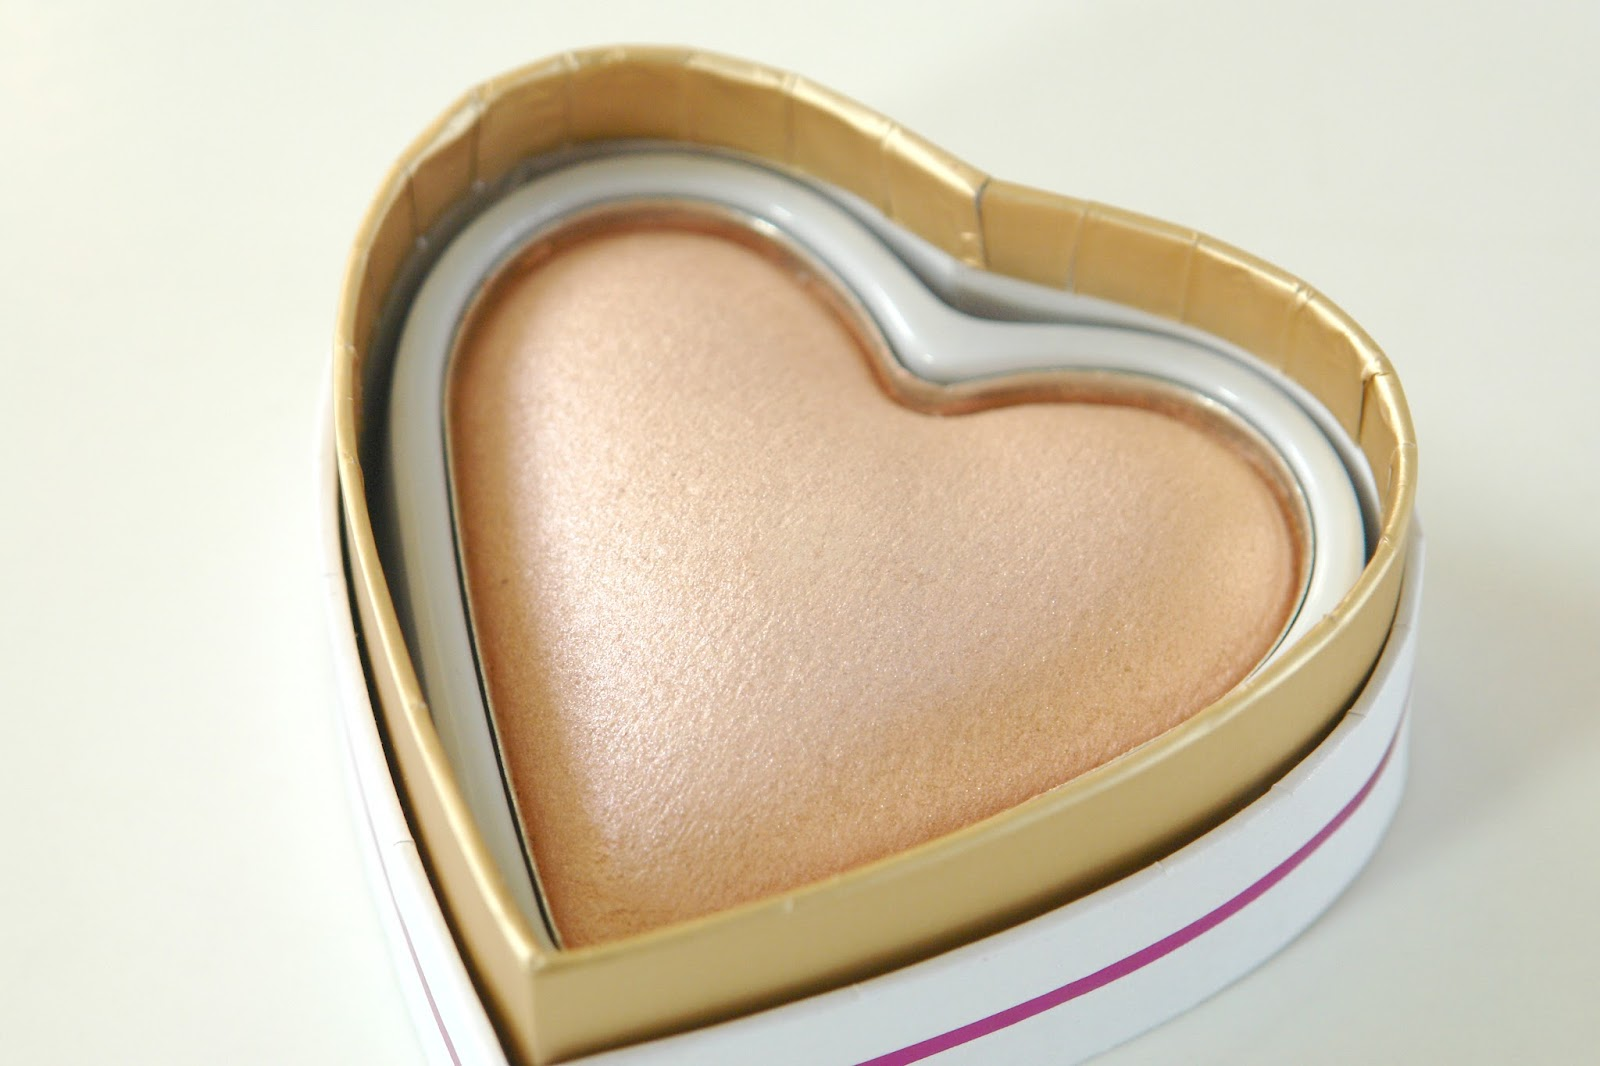 Makeup Revloution I ♡ Makeup Goddess of Love Highlighter review, highlighter, make up, Makeup Revolution, beauty, review, blogger, swatches